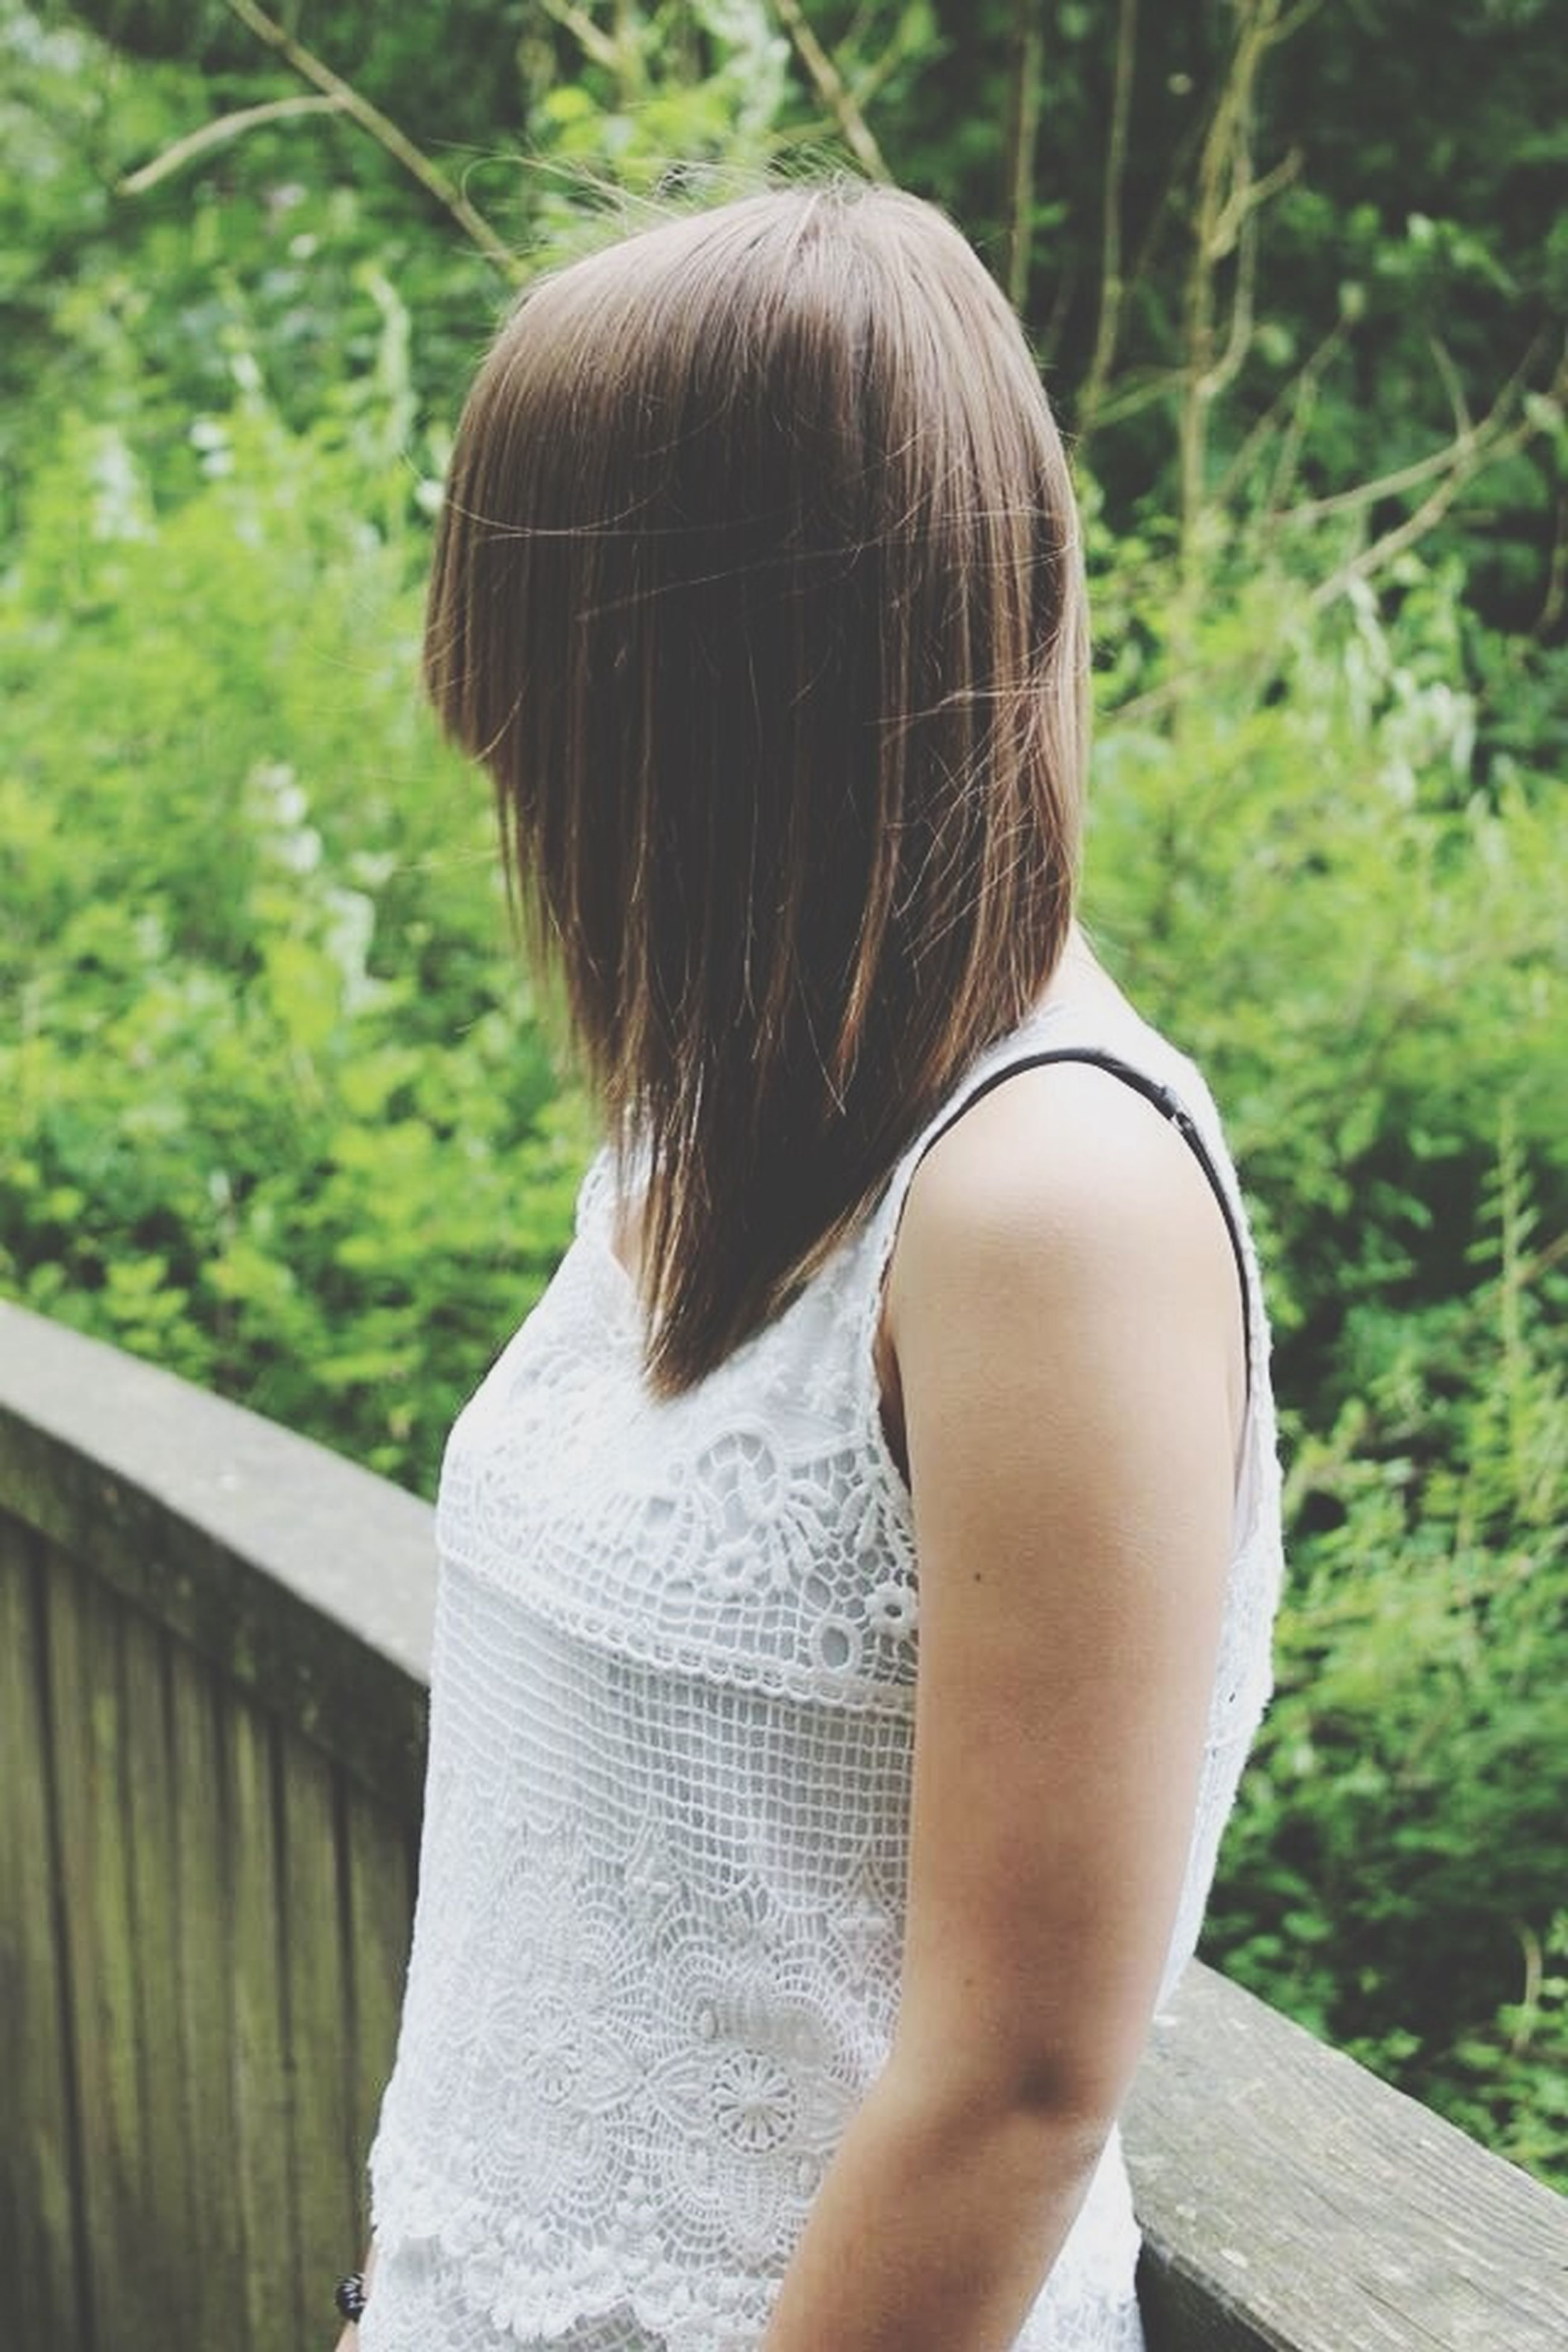 lifestyles, focus on foreground, leisure activity, rear view, person, holding, casual clothing, waist up, long hair, close-up, standing, day, headshot, outdoors, tree, blond hair, brown hair